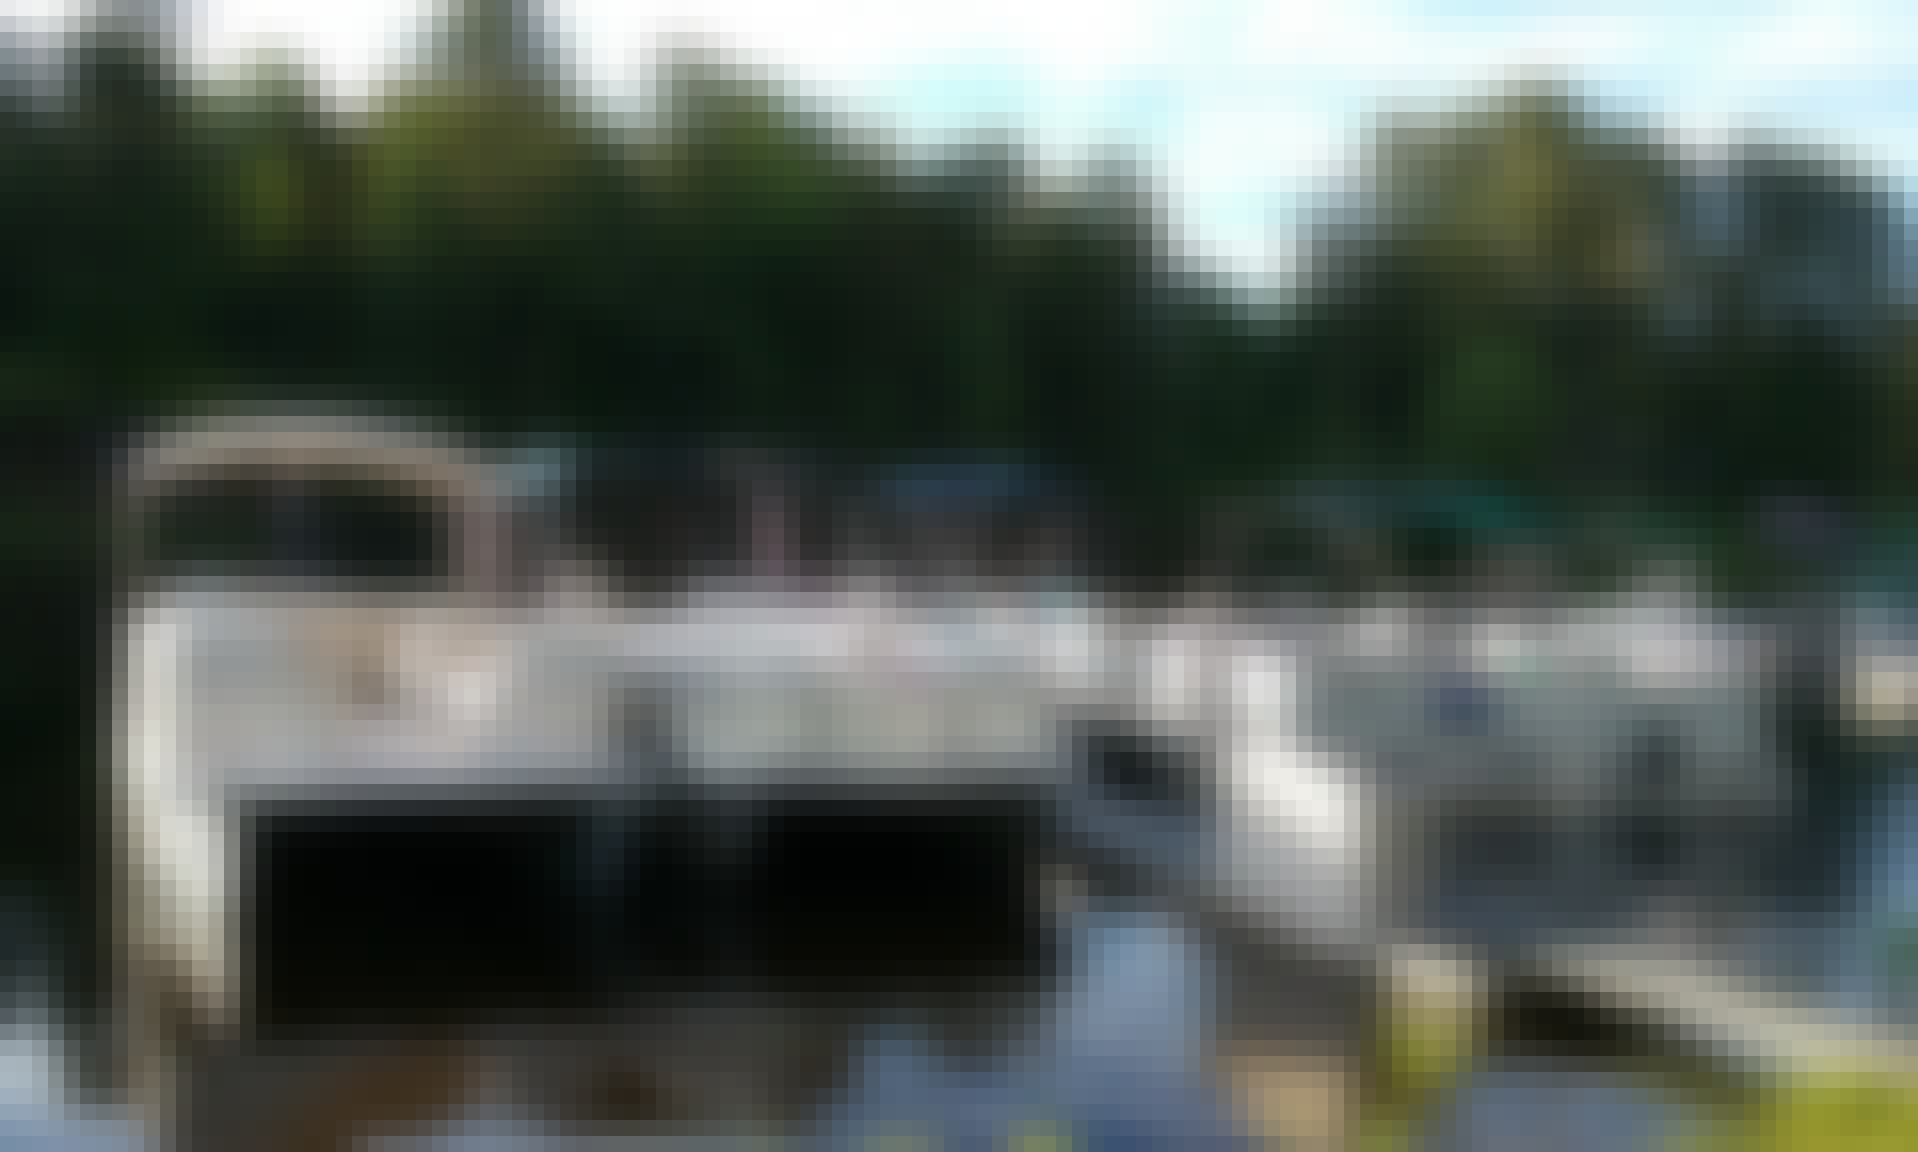 20ft Pontoon Boat Rental in Rockwood, Maine